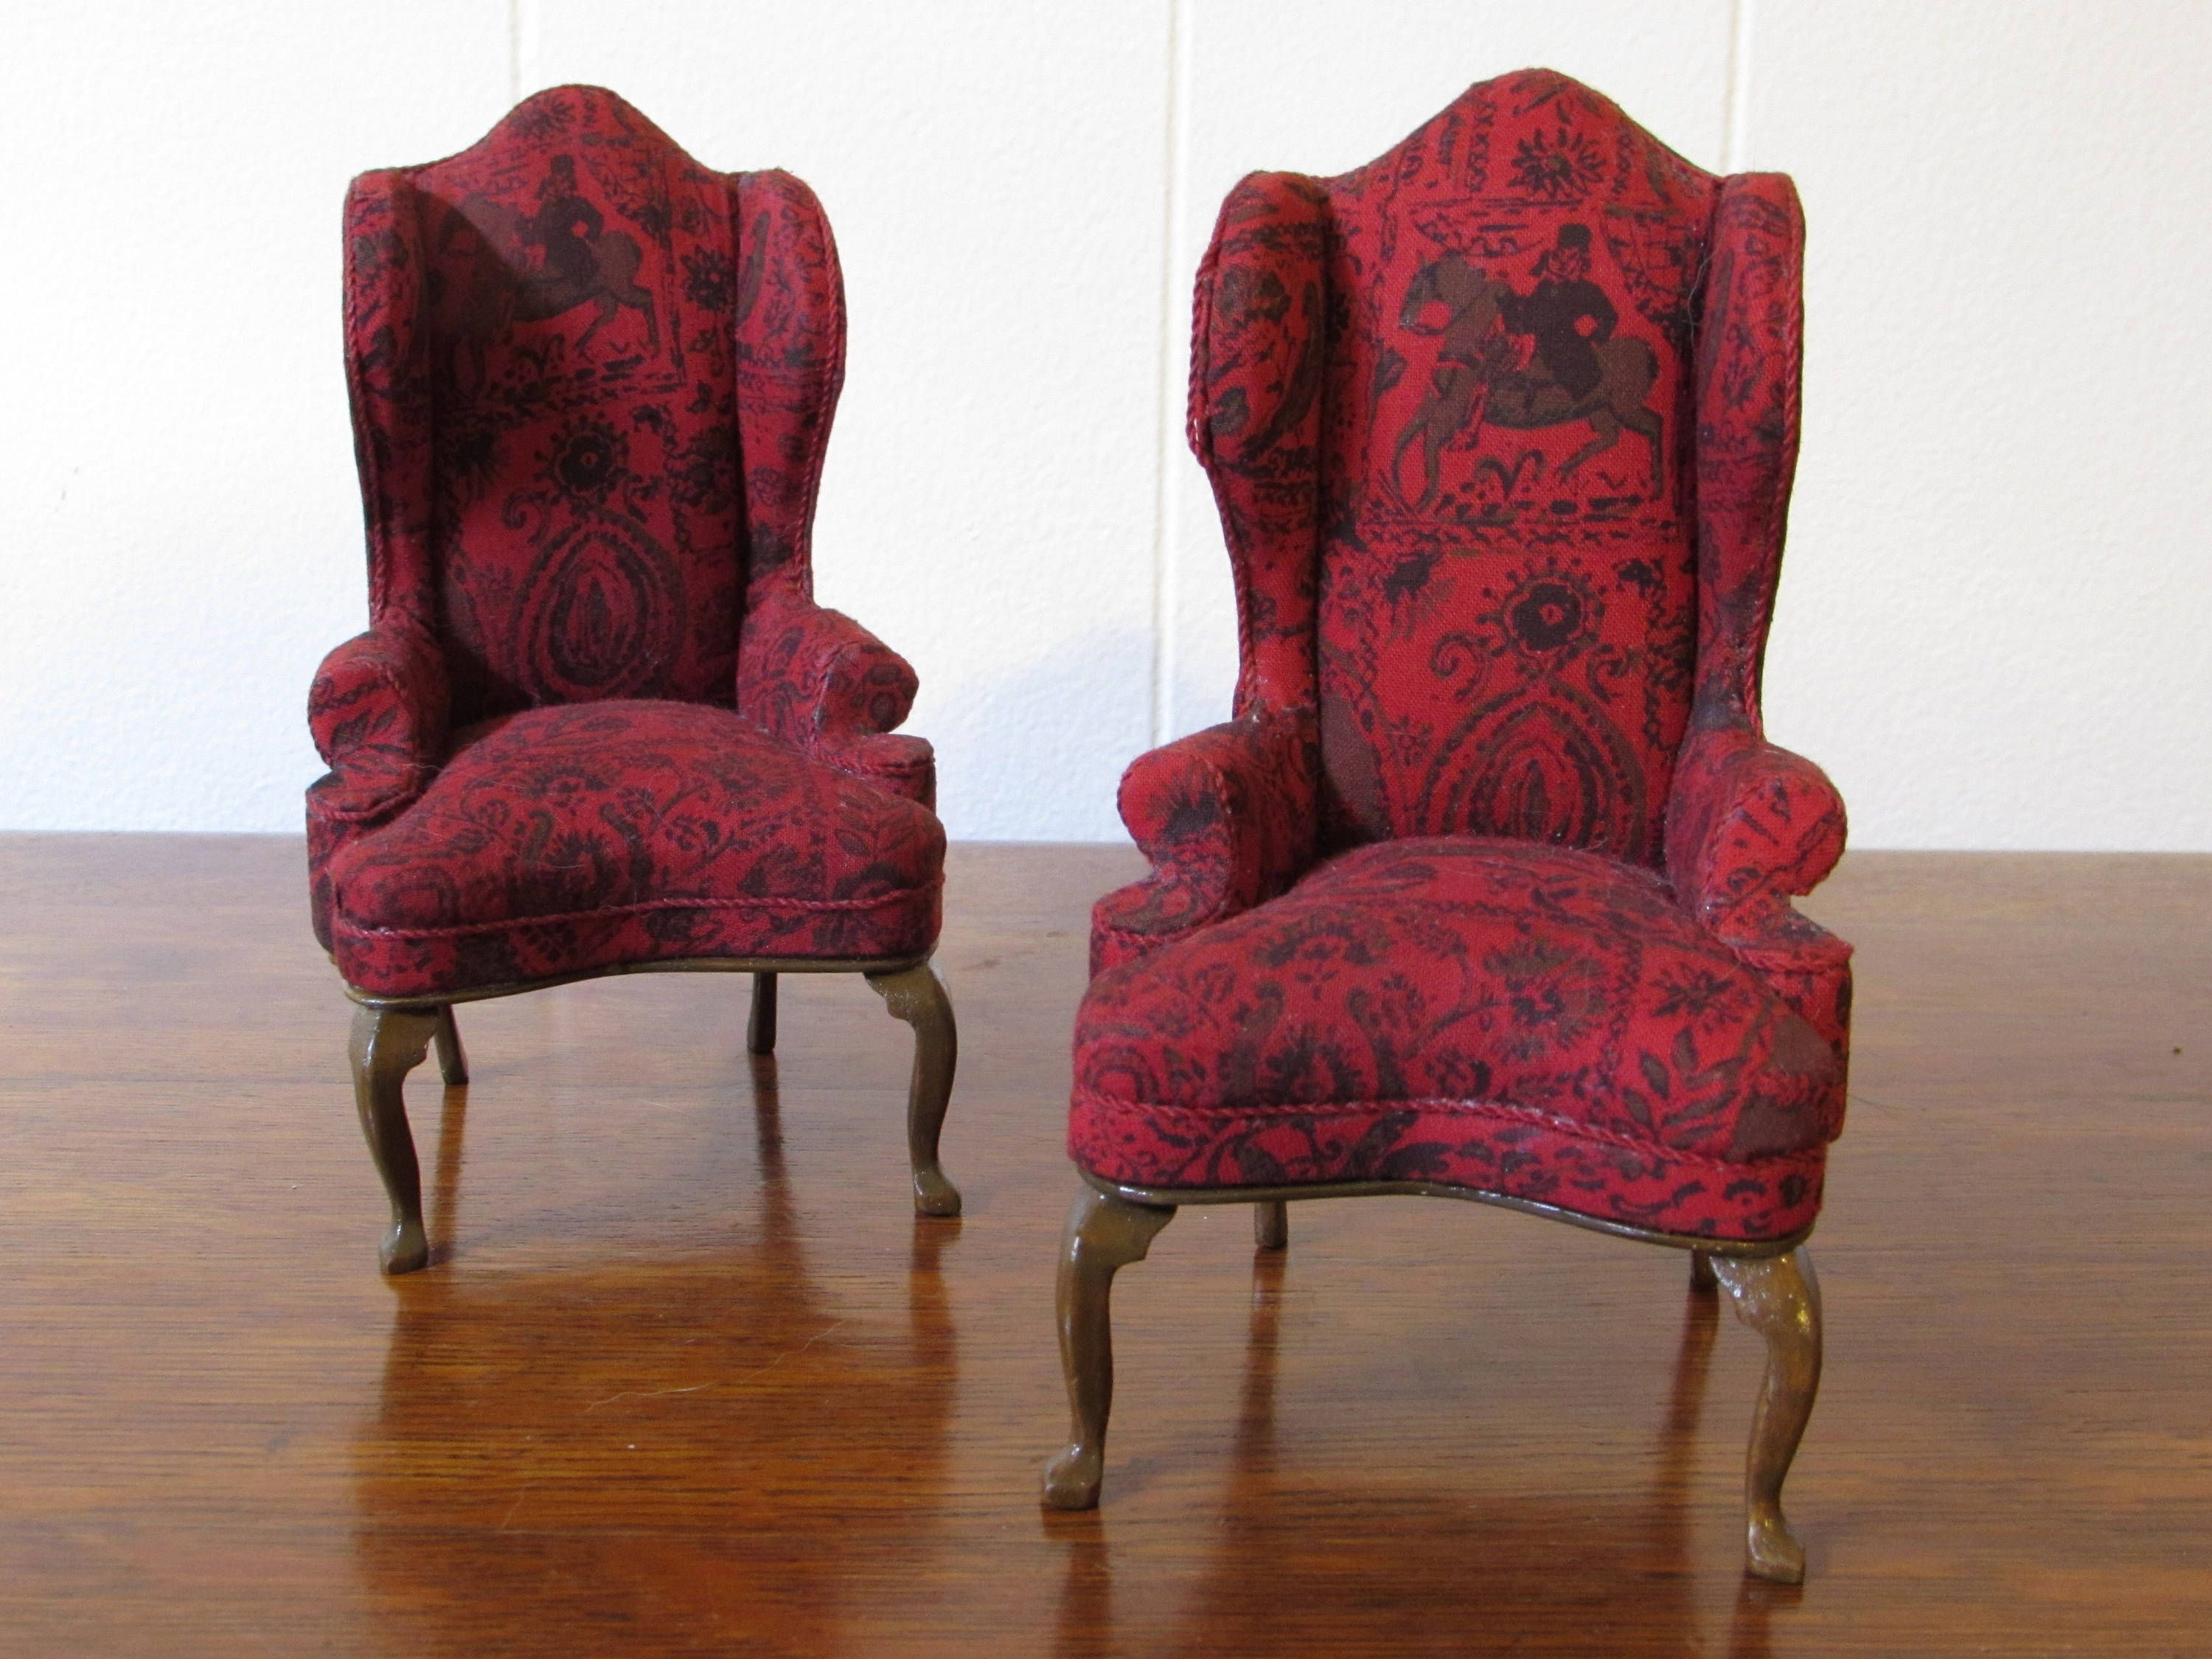 Vintage Dollhouse Furniture Wingback Chair Set, Doll House